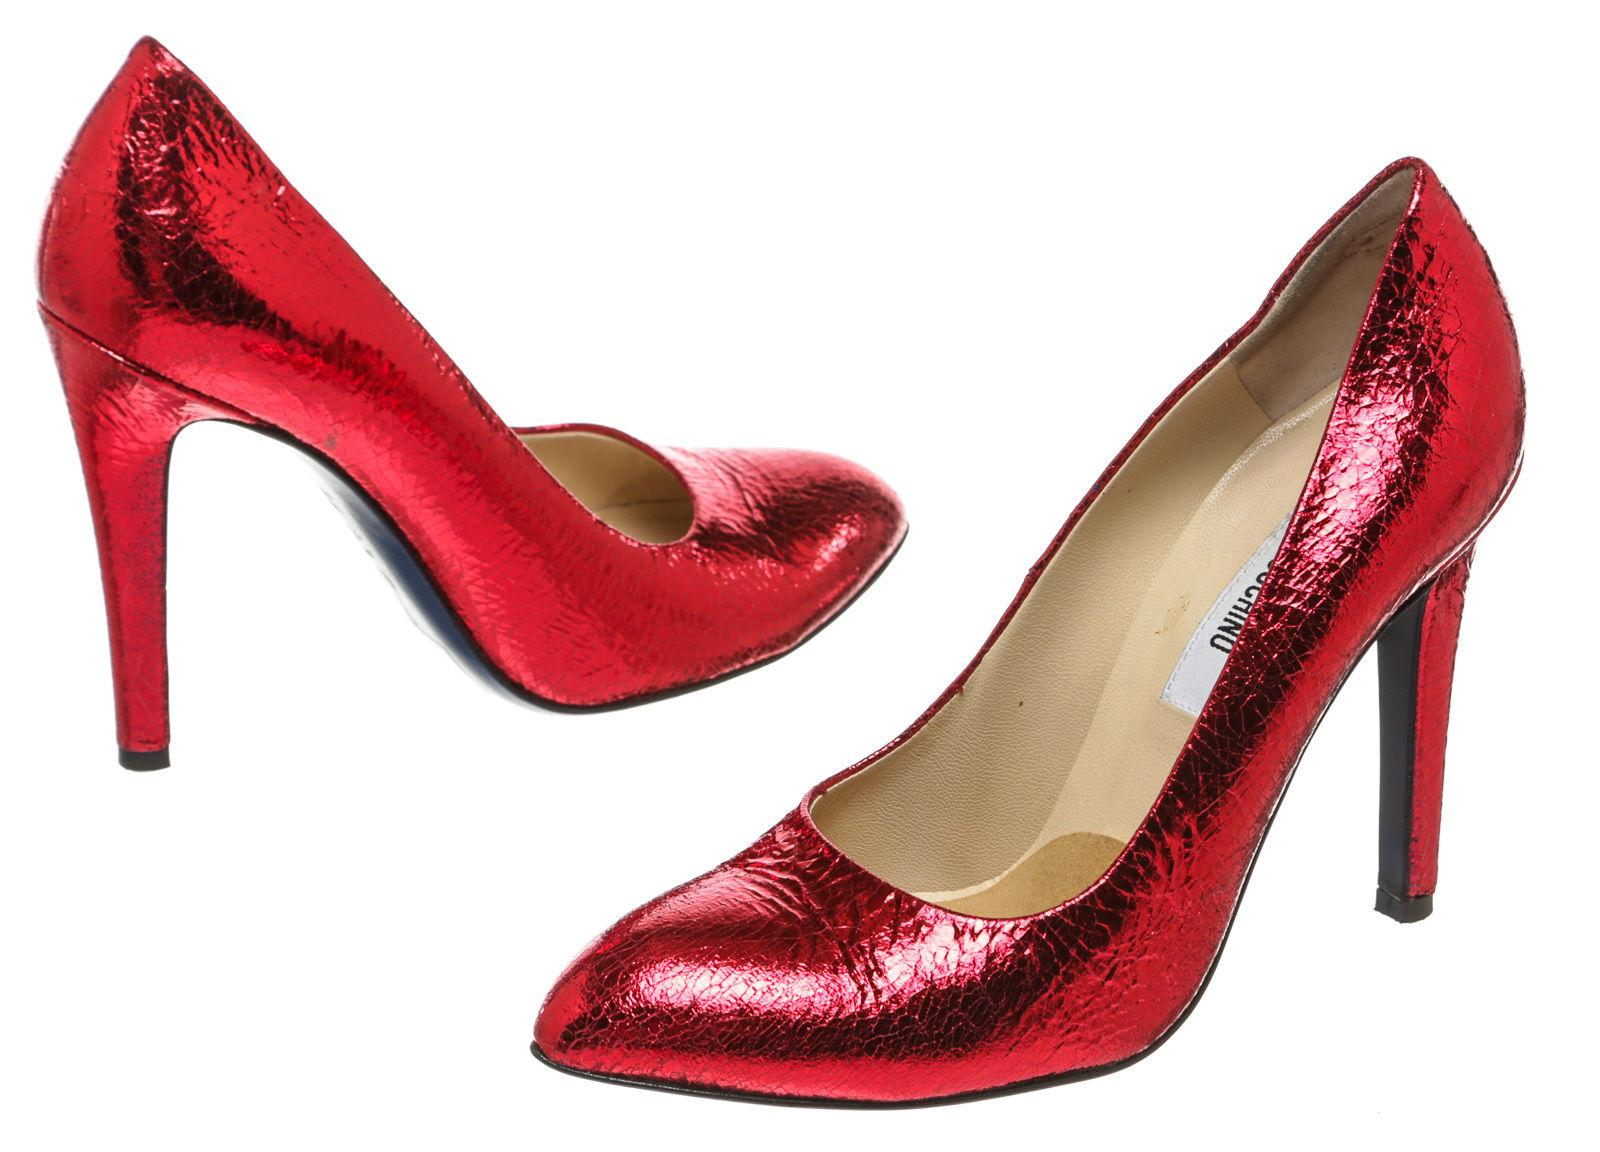 Pre-owned - Leather heels Moschino G2h4nQ